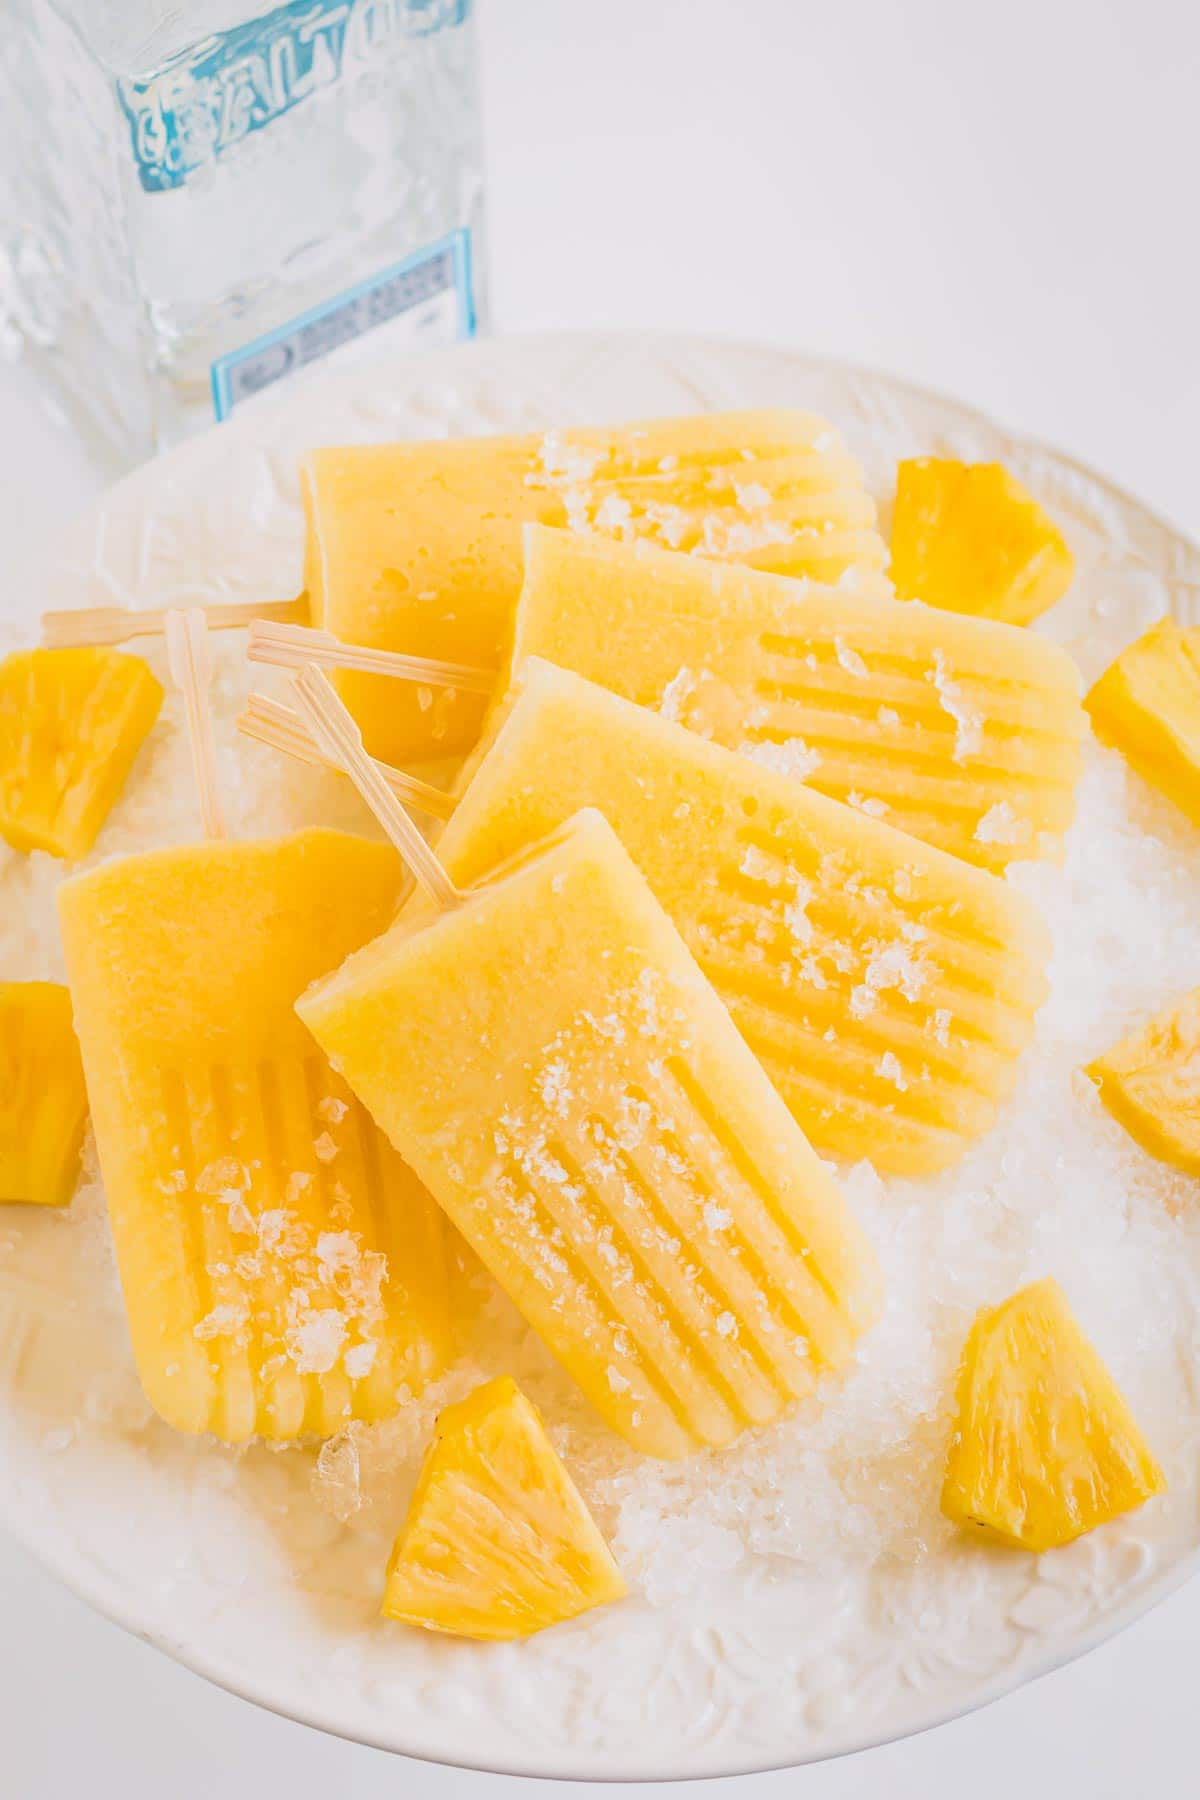 Handful of pineapple popsicles on crushed ice.